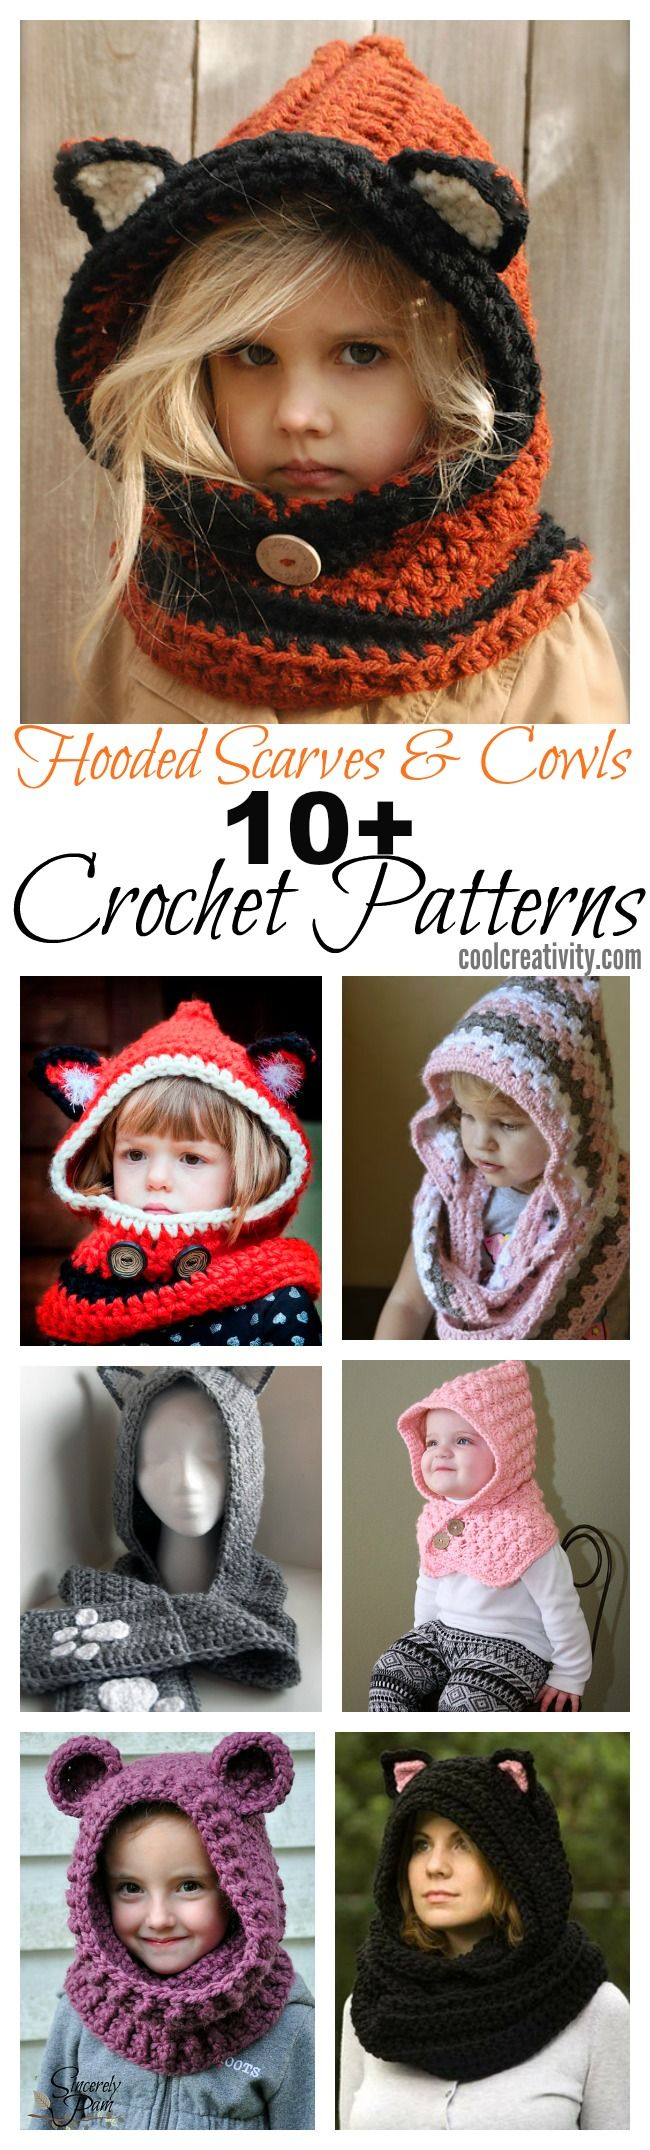 10+ Crochet Hooded Scarves and Cowls Patterns | Kapuzenschals ...